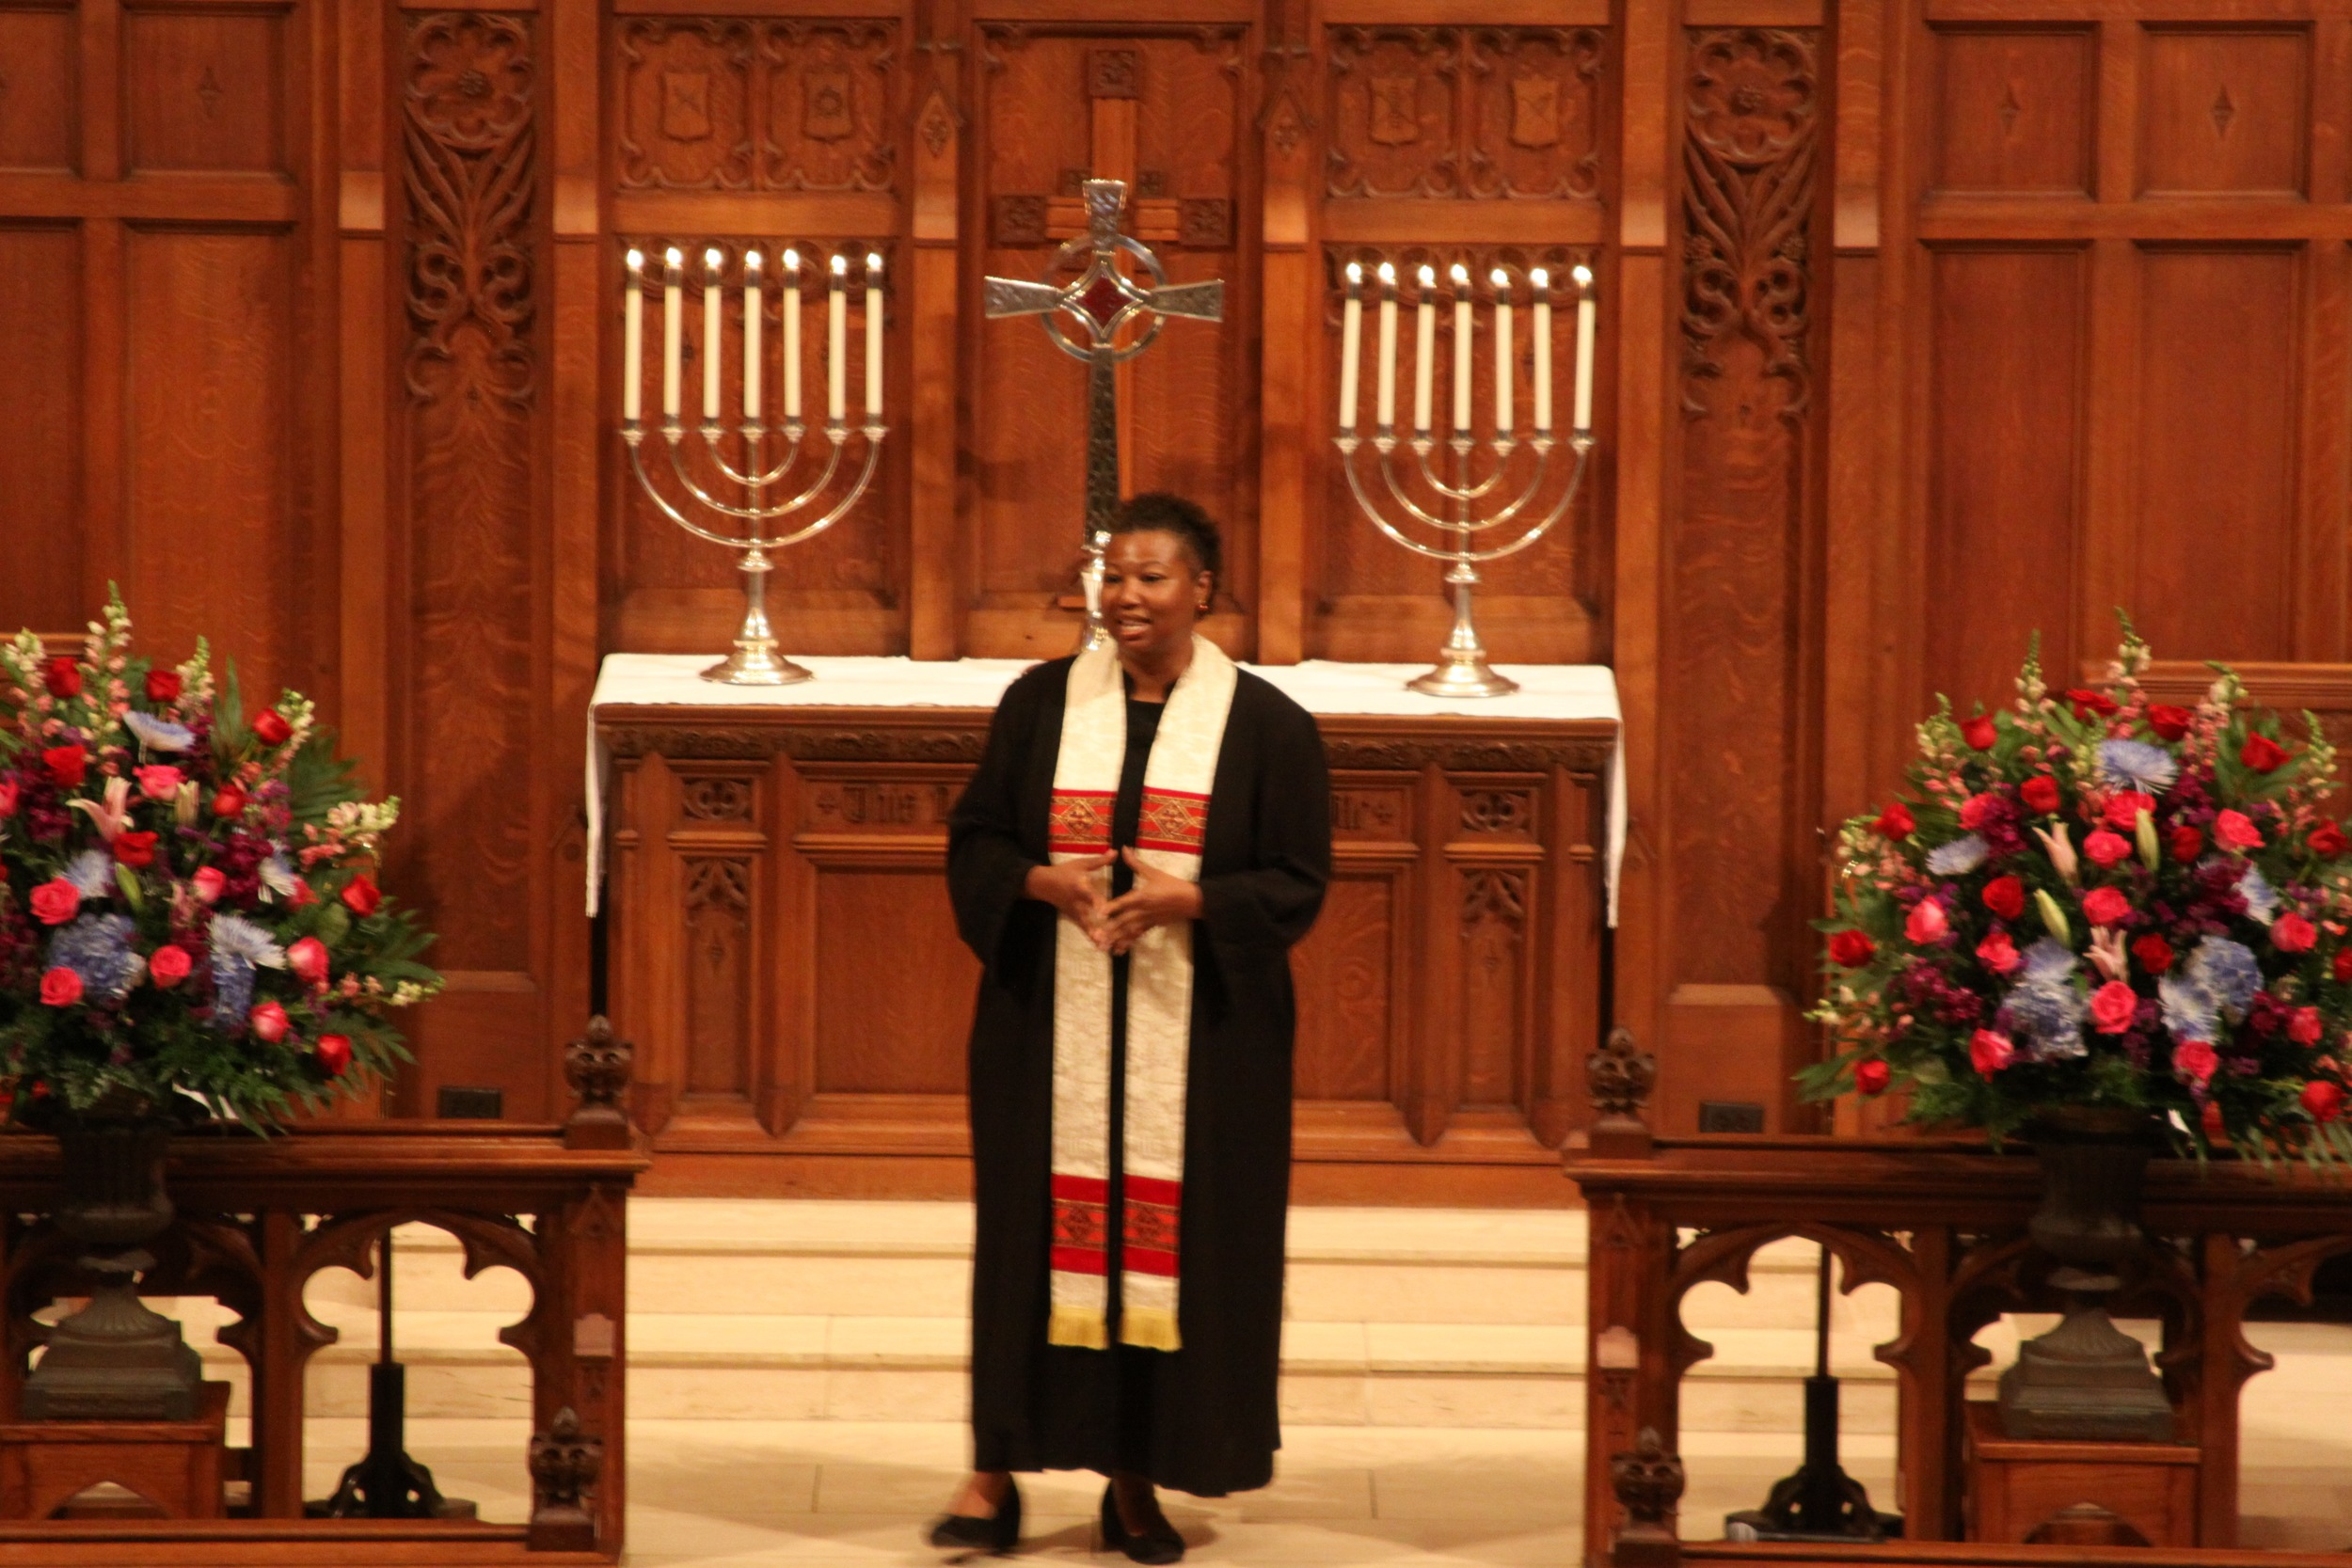 Rev. Eleanor Colvin